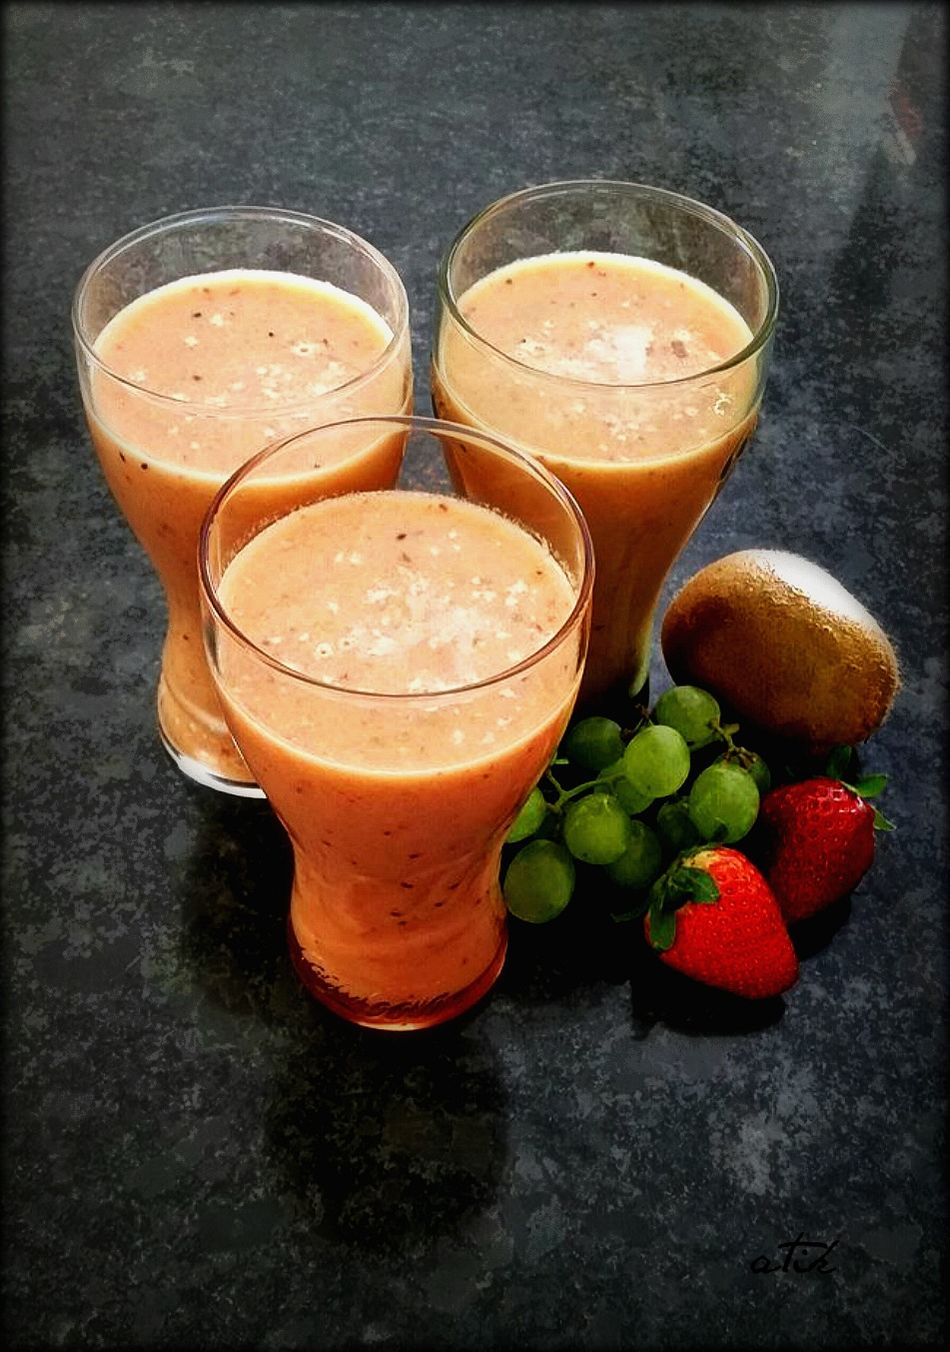 Blended Drink Close-up Cocktail Coffee, Peace Convenience Food Day Drink Drinking Glass Drinking Straw Food And Drink Freshness Fruitjuice Healthy Eating Healthy Lifestyle Homemade Indoors  Milkshake No People Ready-to-eat Refreshment Smoothie